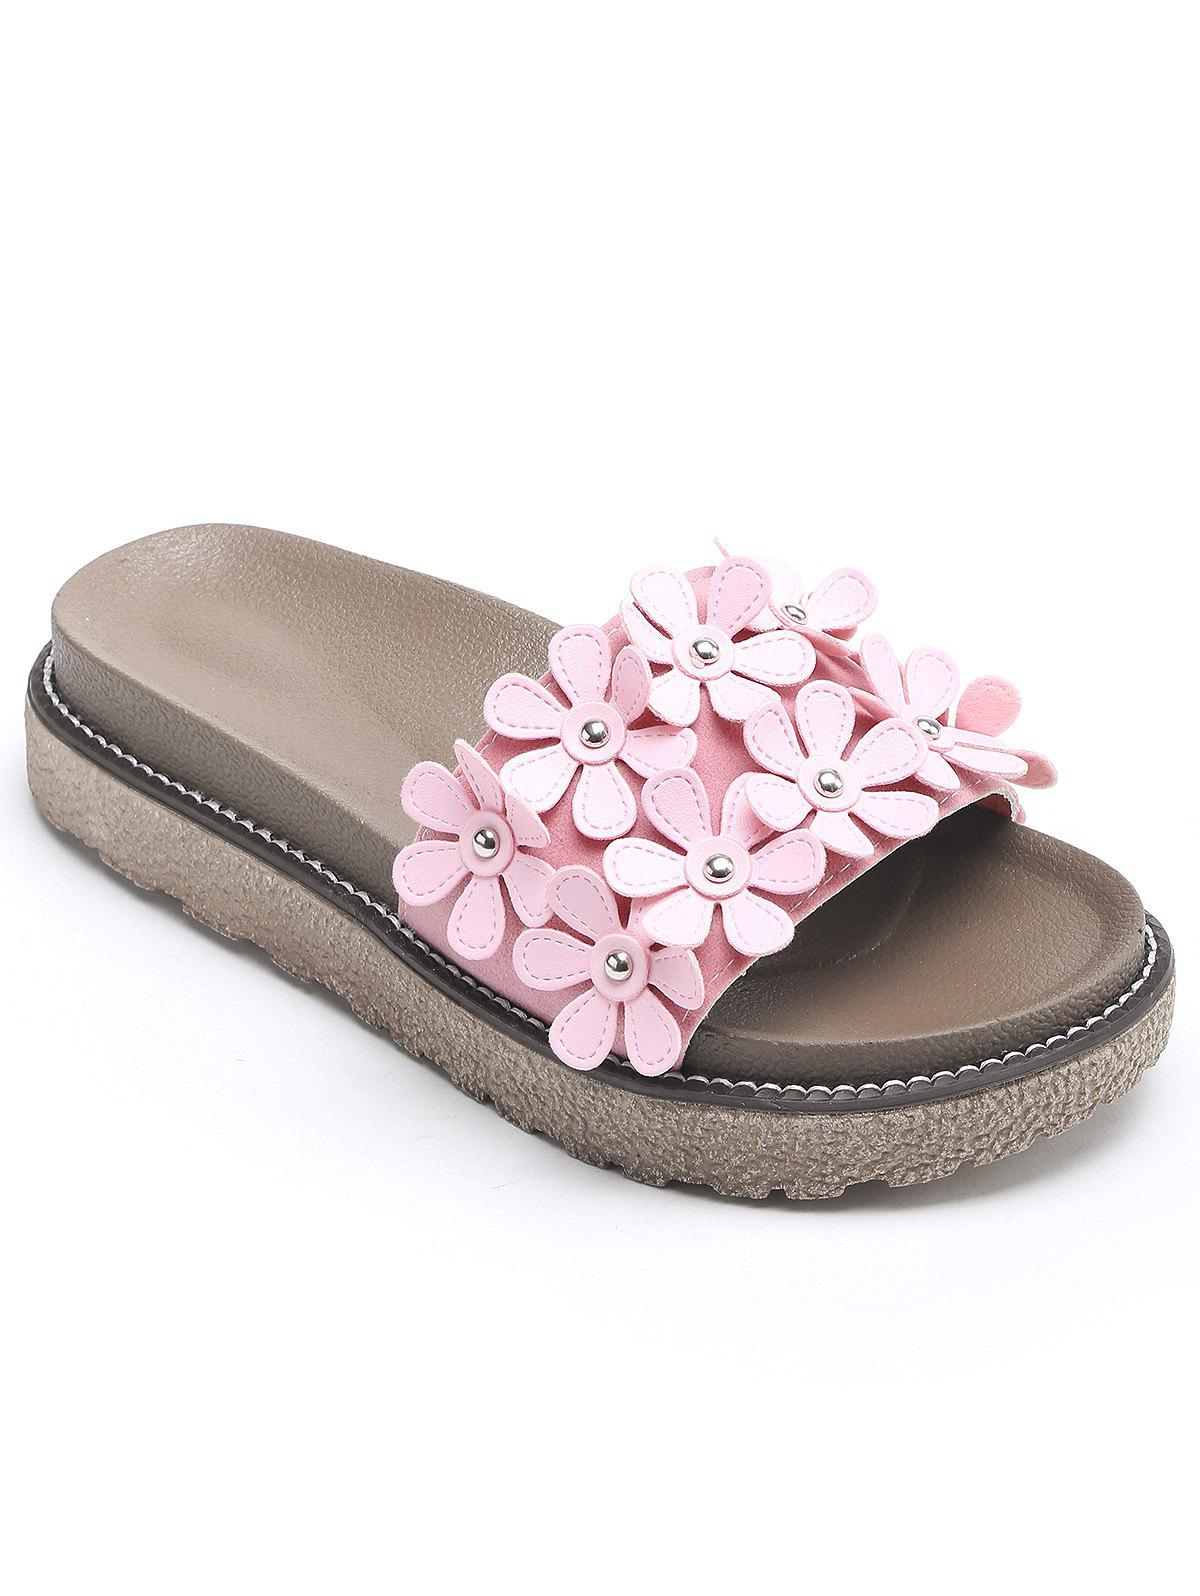 Discount All Over Floral Platform Outdoor Slippers